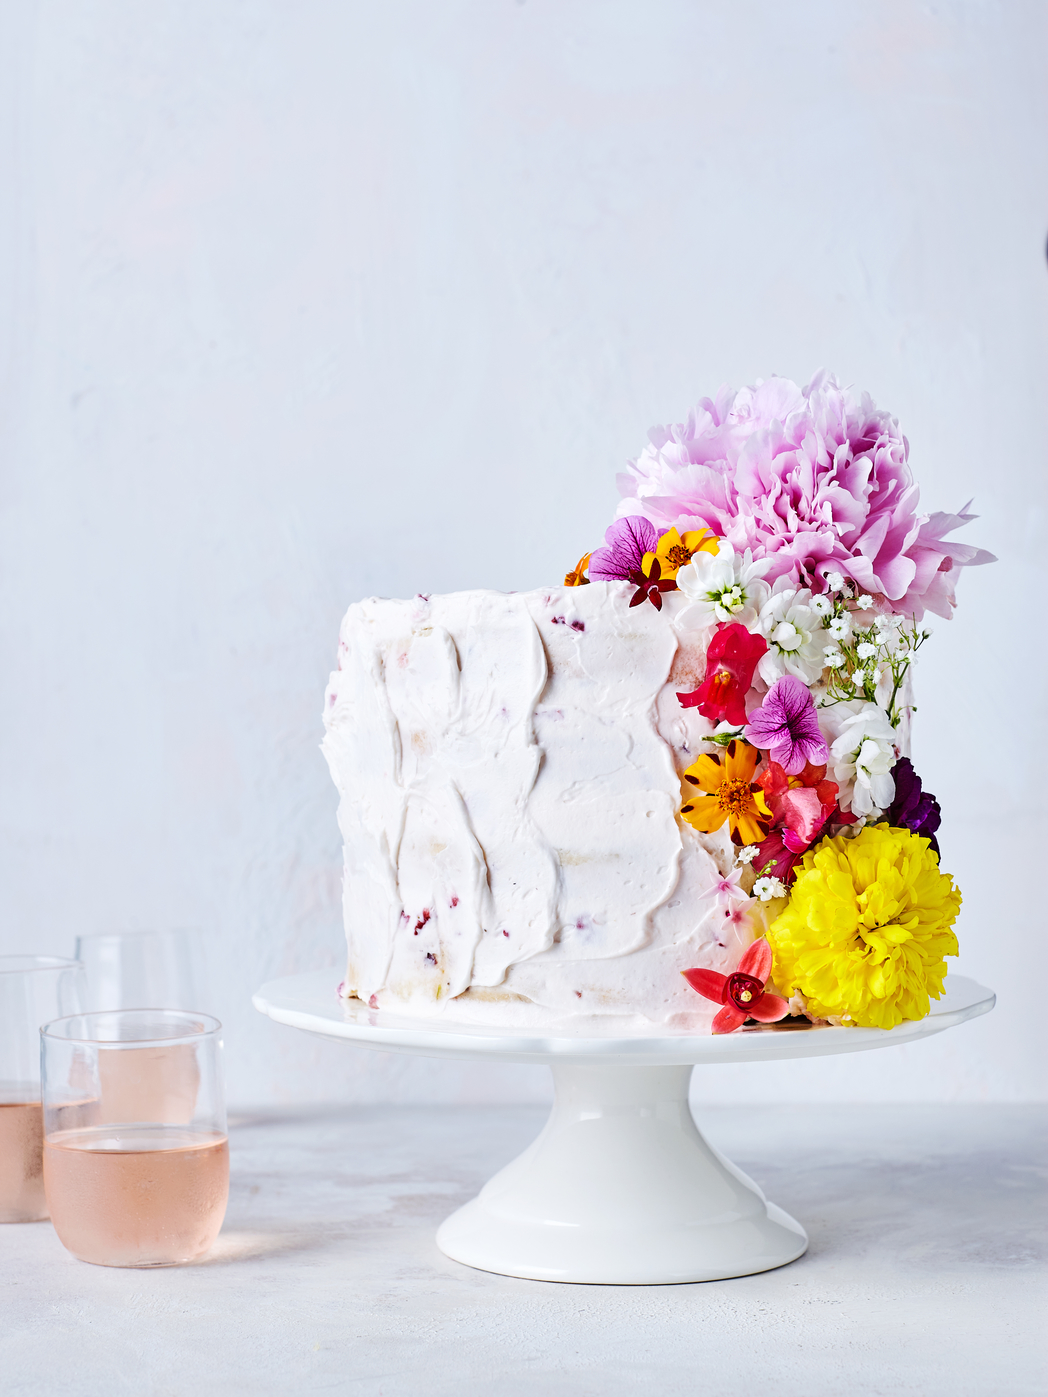 Our Most Impressive Cakes - MyRecipes